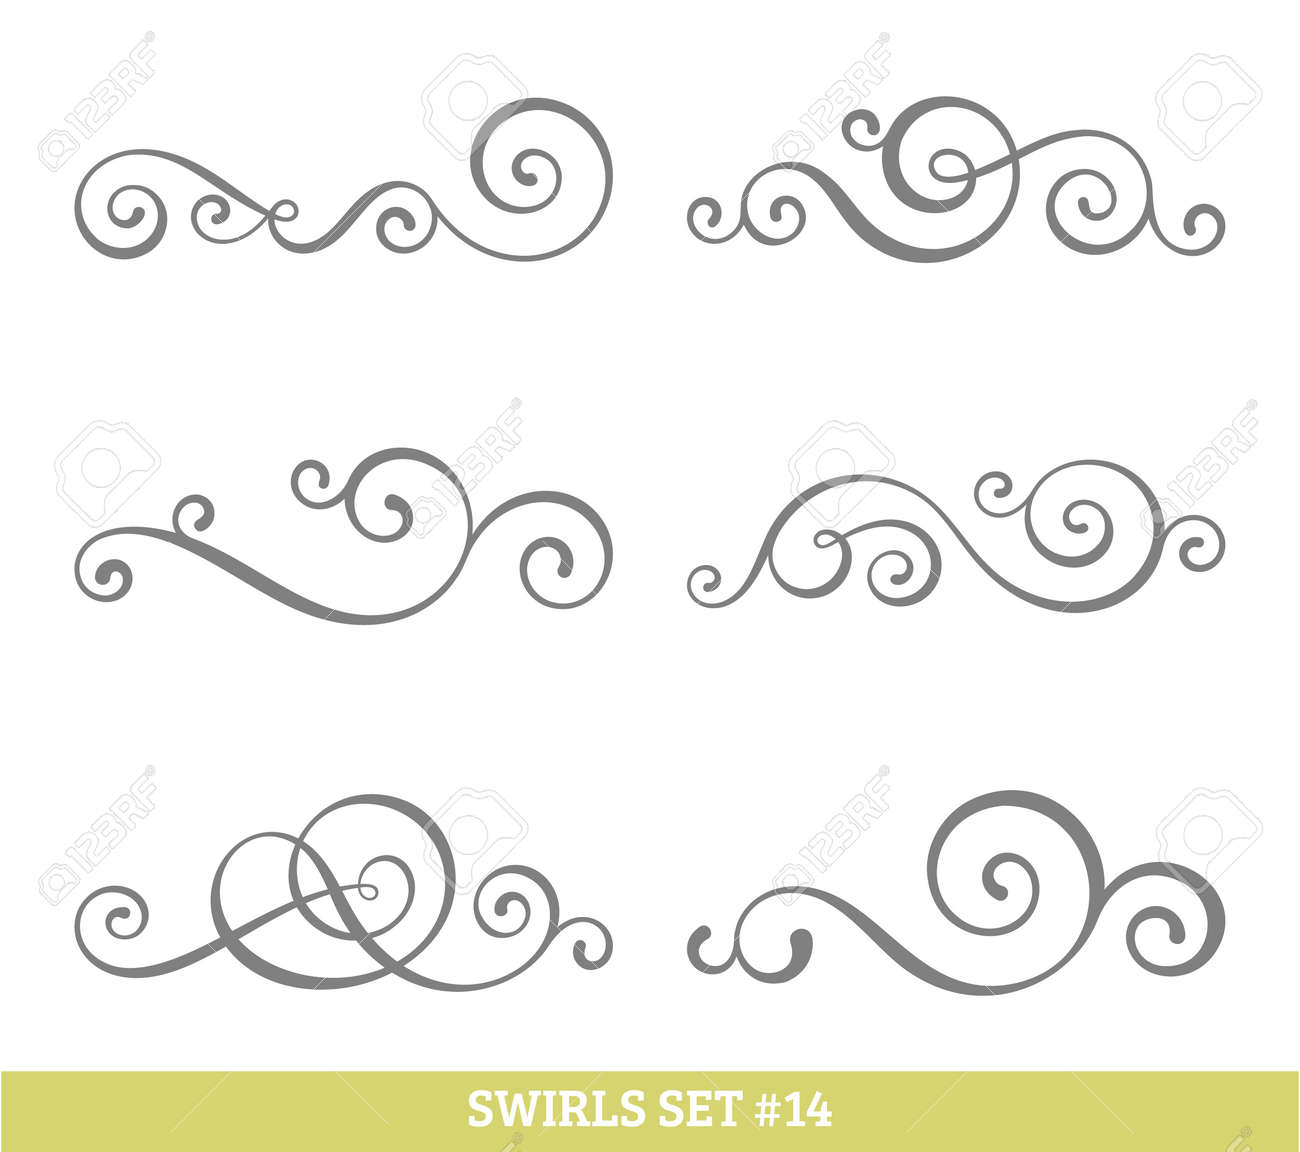 166,805 Flourish Stock Vector Illustration And Royalty Free ...